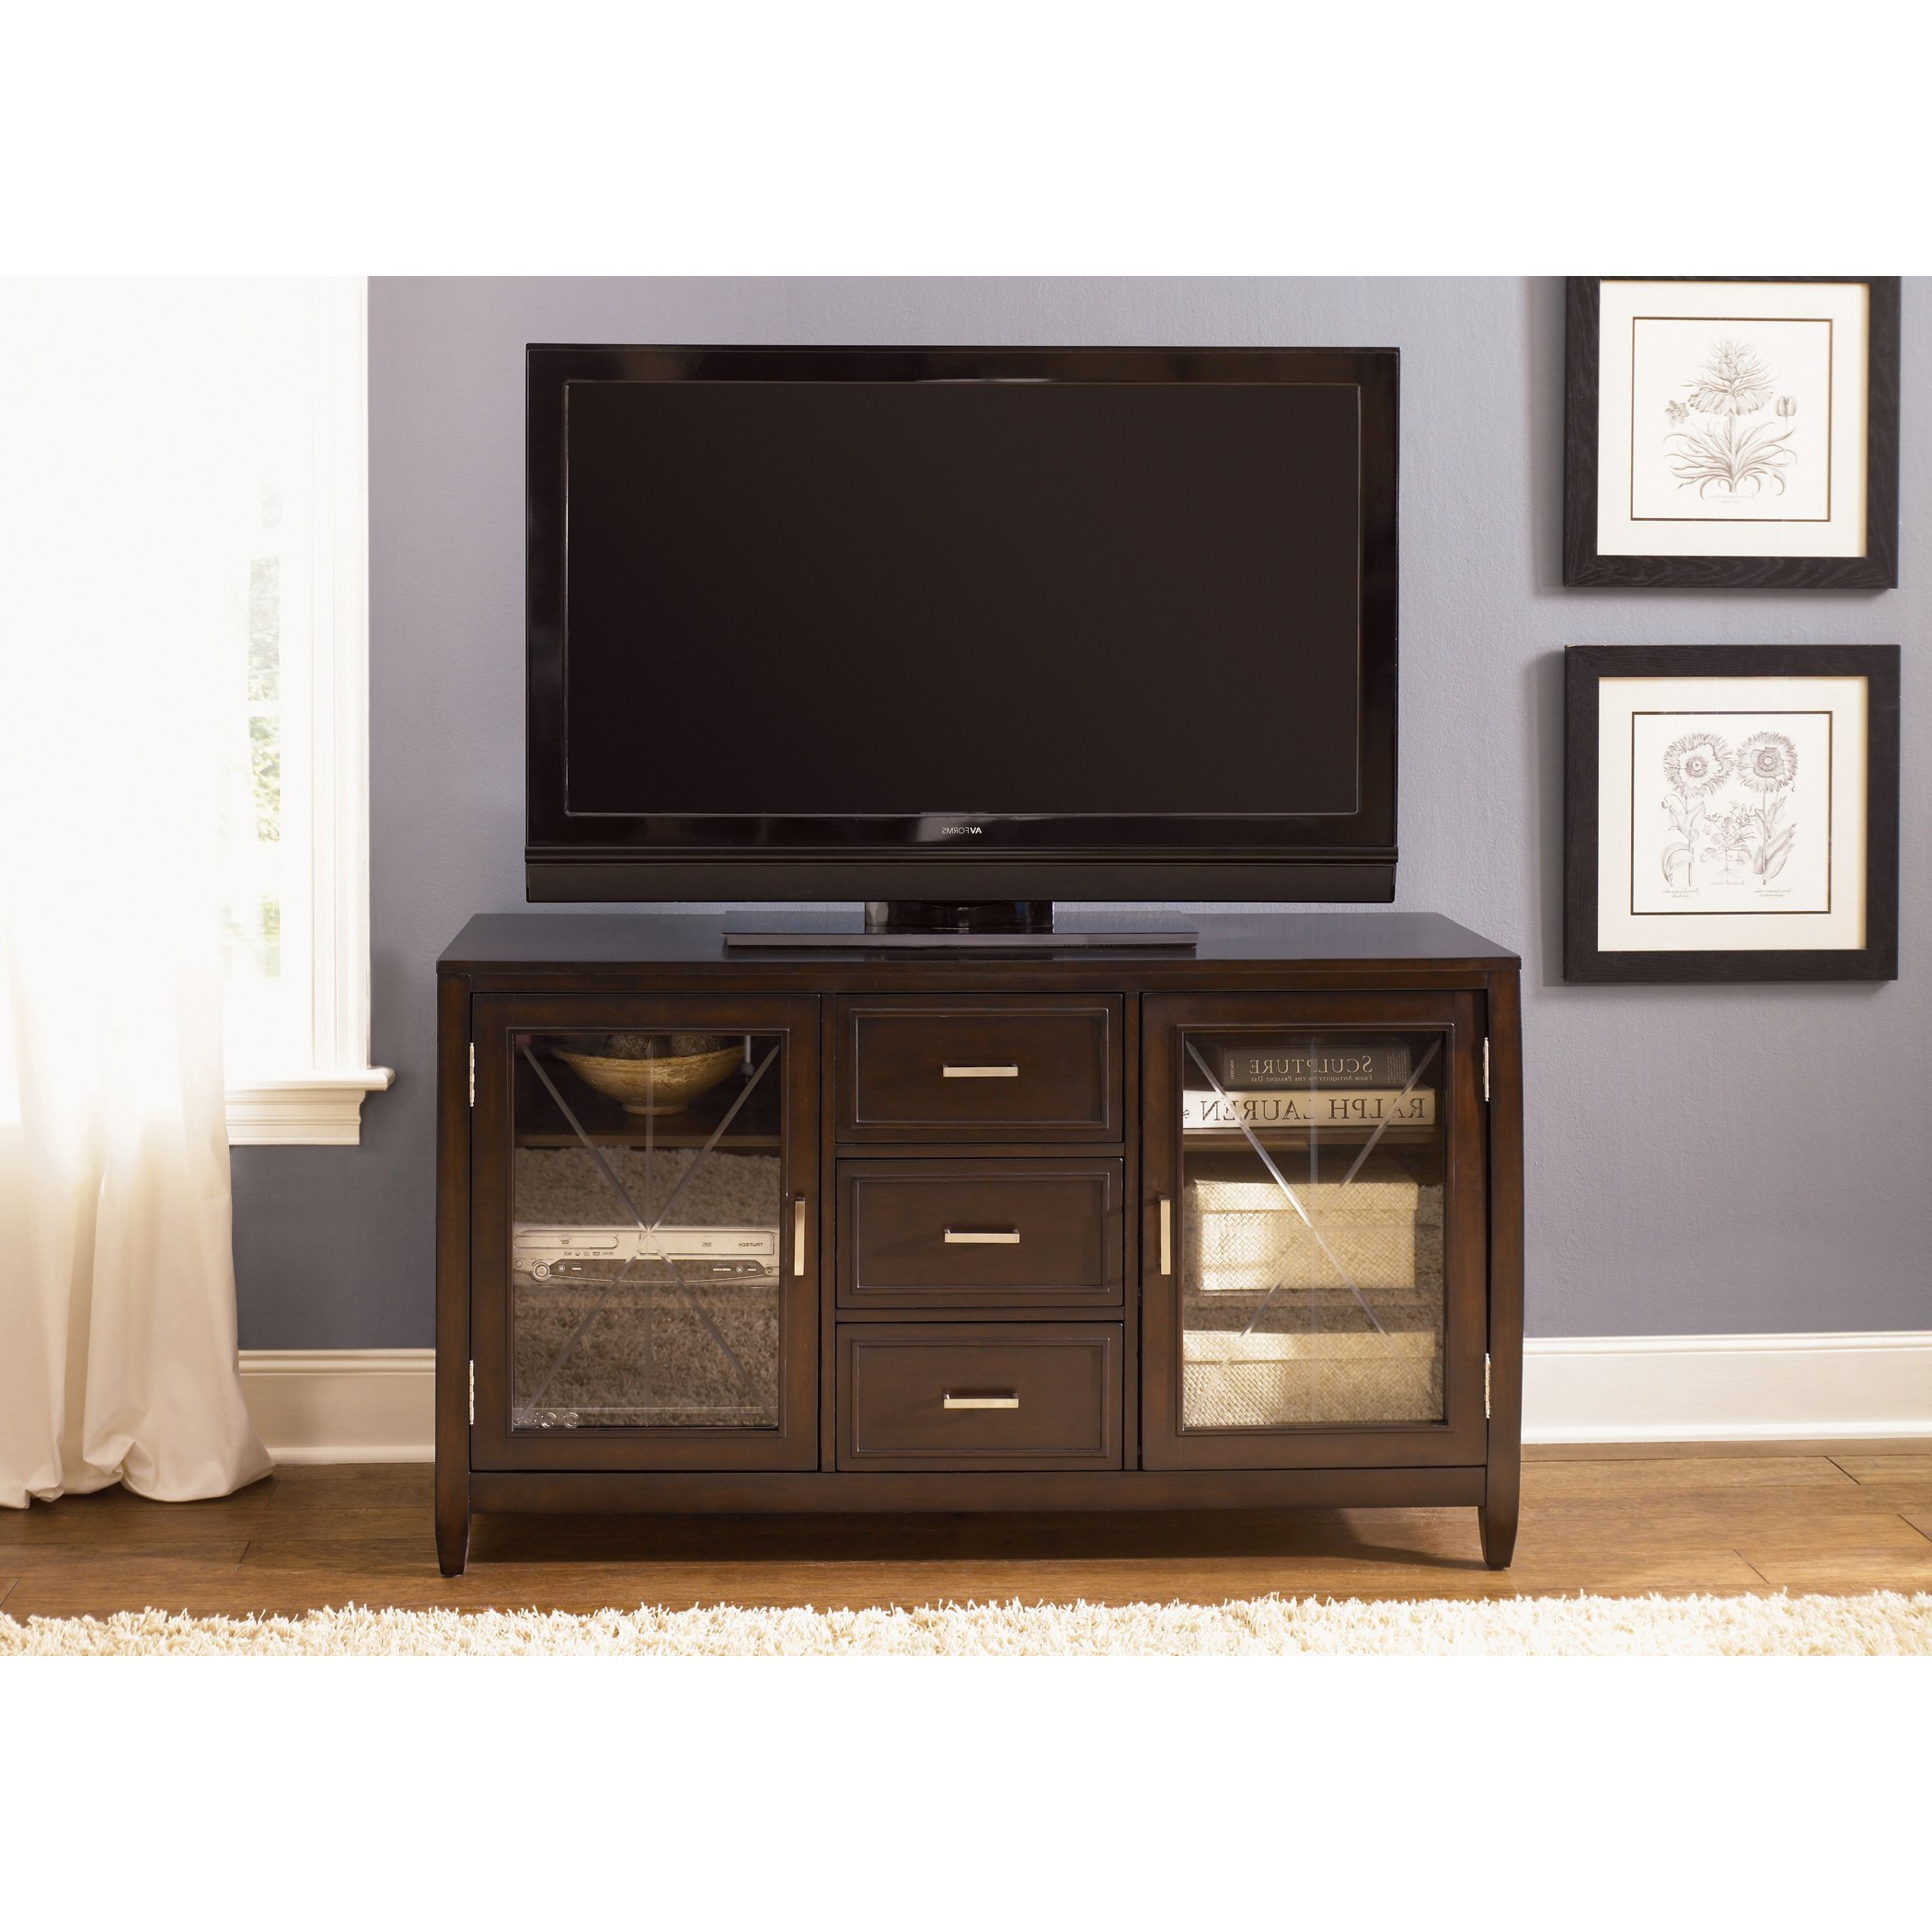 Shop Liberty Caroline 60 Inch Entertainment Tv Stand – On Sale With Regard To Most Recently Released Laurent 60 Inch Tv Stands (View 10 of 20)